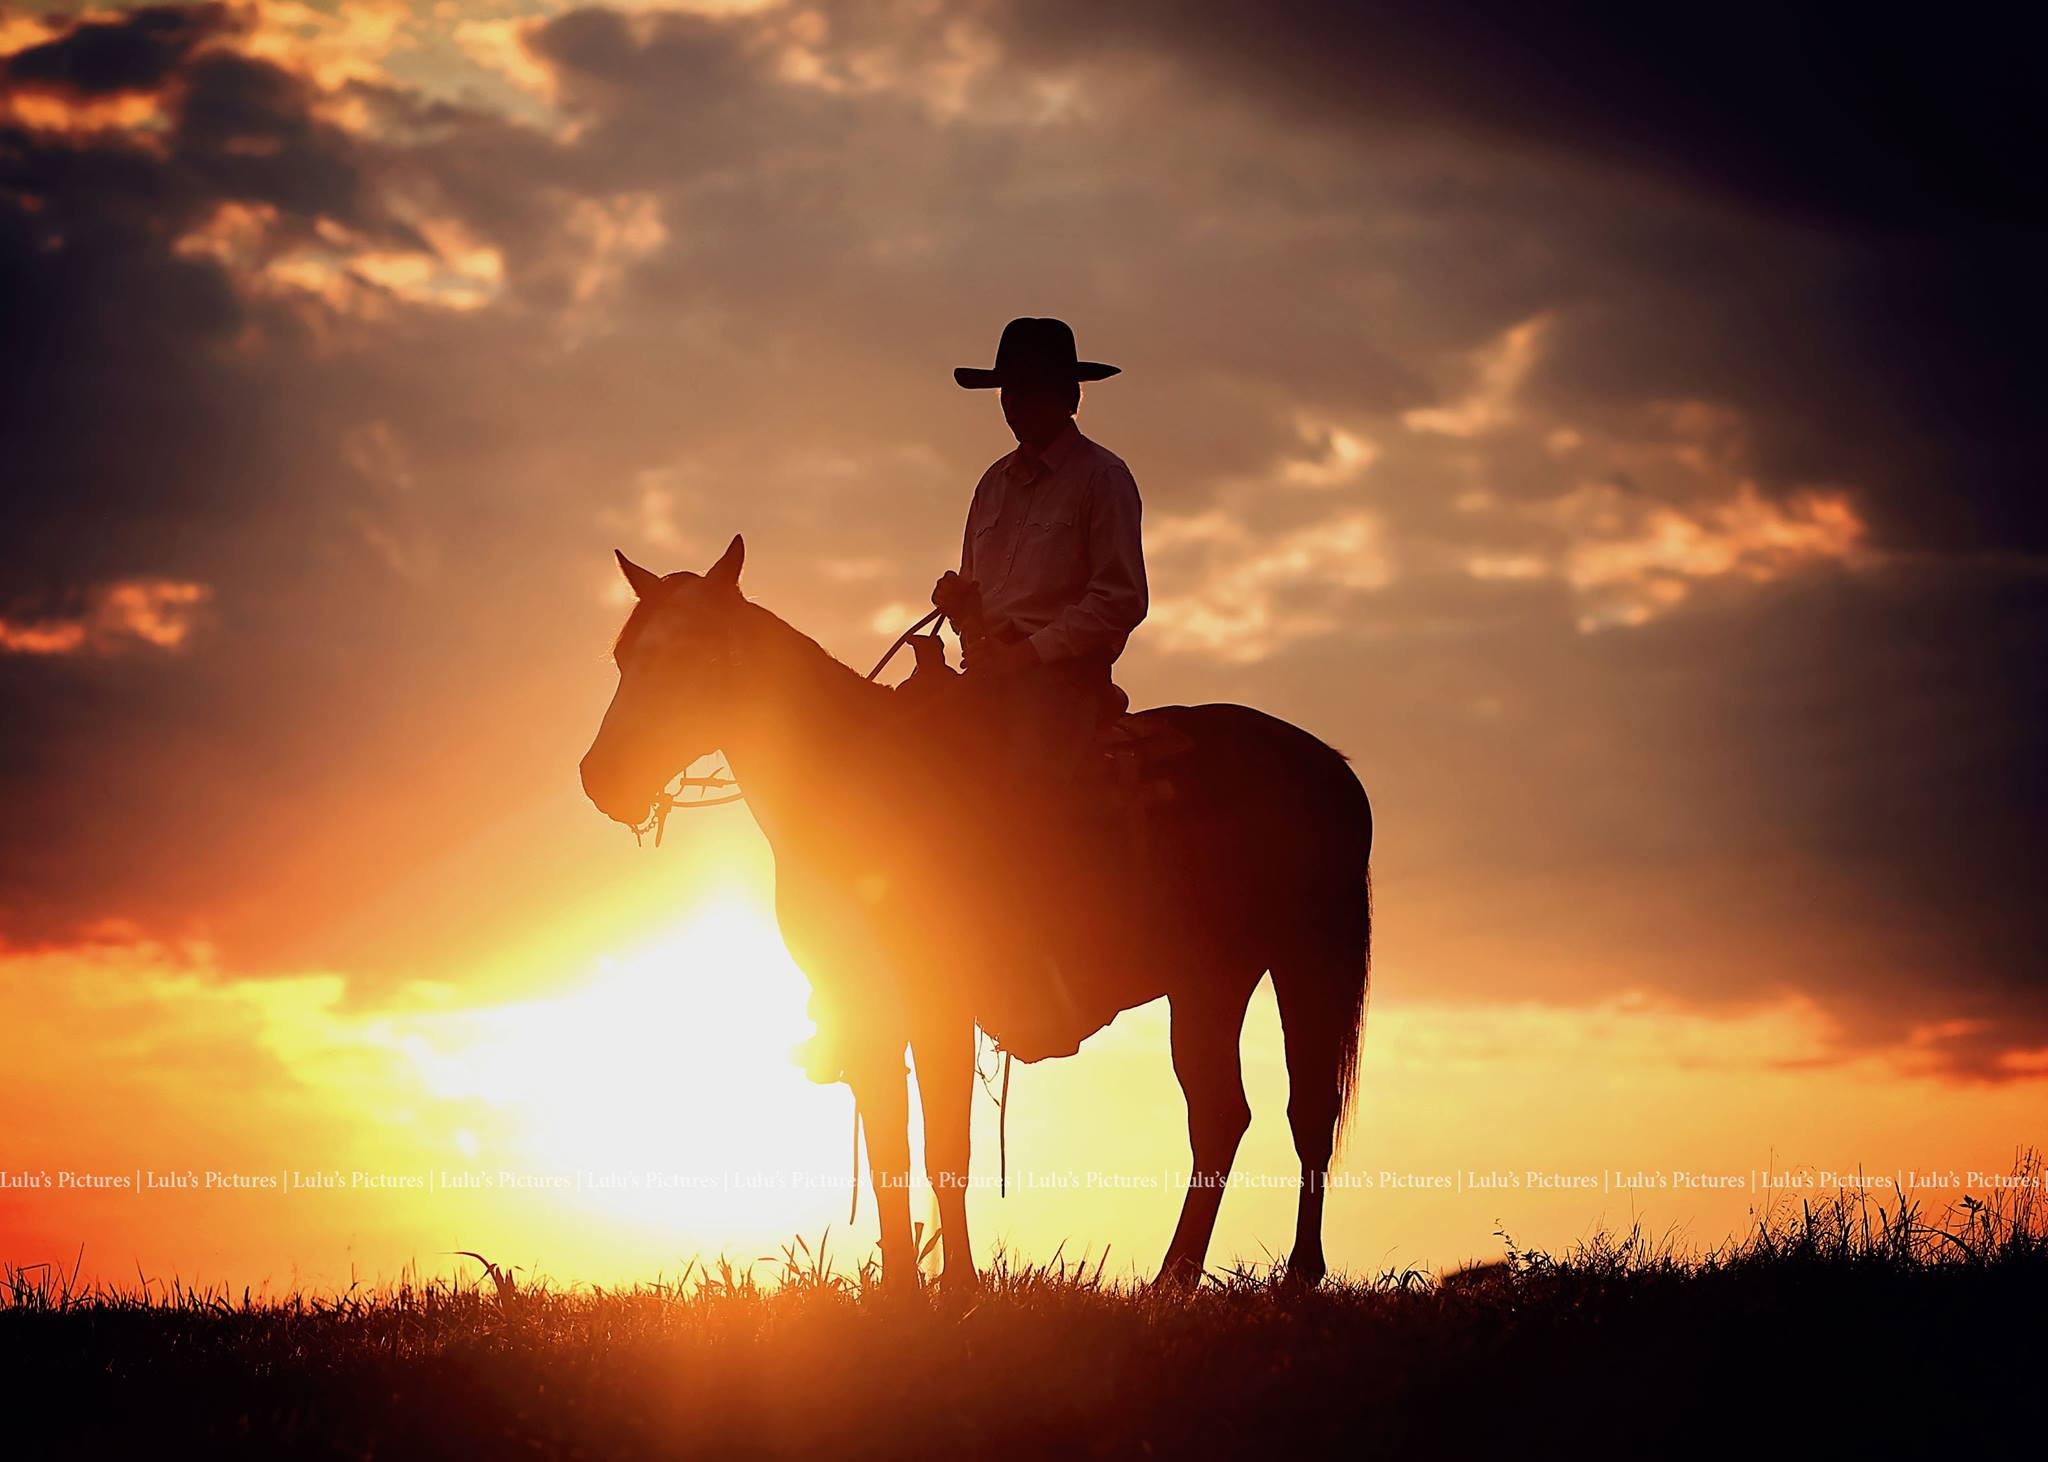 Yes, our cowboys do ride off into the sunset!